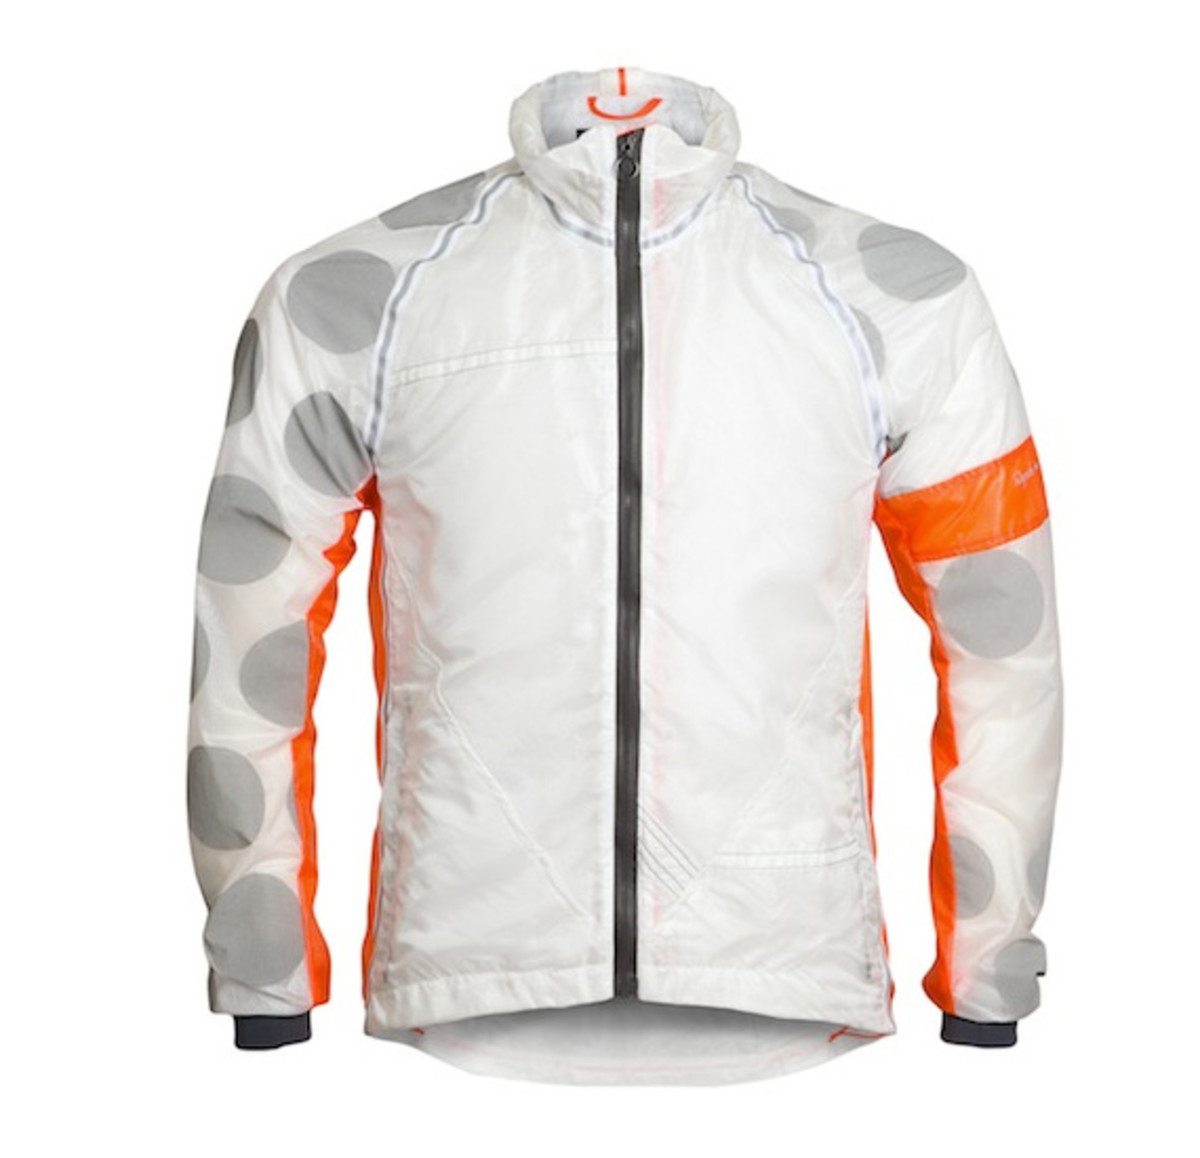 Rapha & Raeburn - Wind Jacket | Video - 0